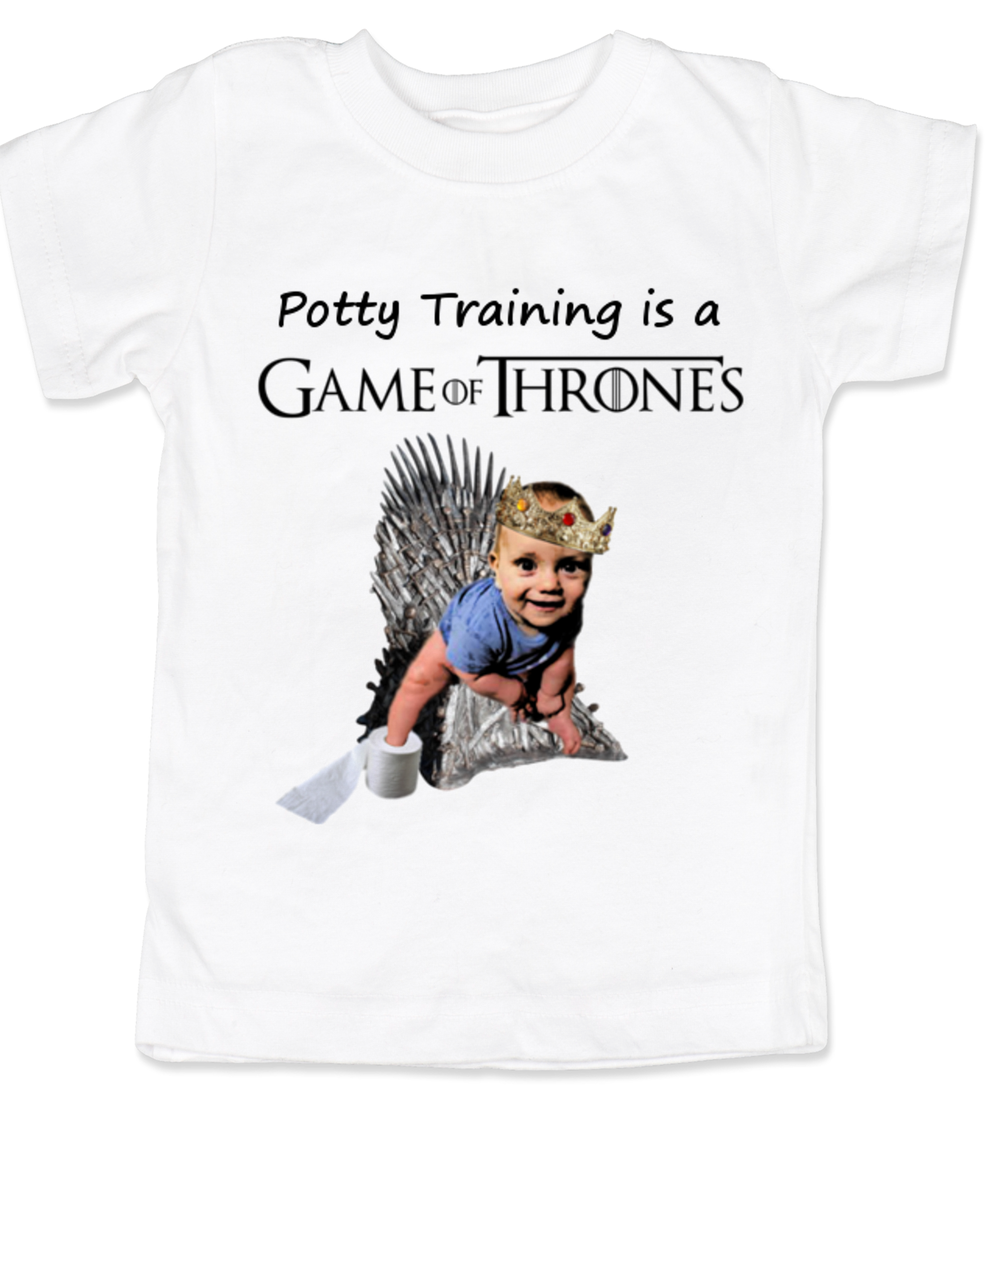 516570f4 game of thrones toddler shirt, potty training is a game of thrones, funny  toilet